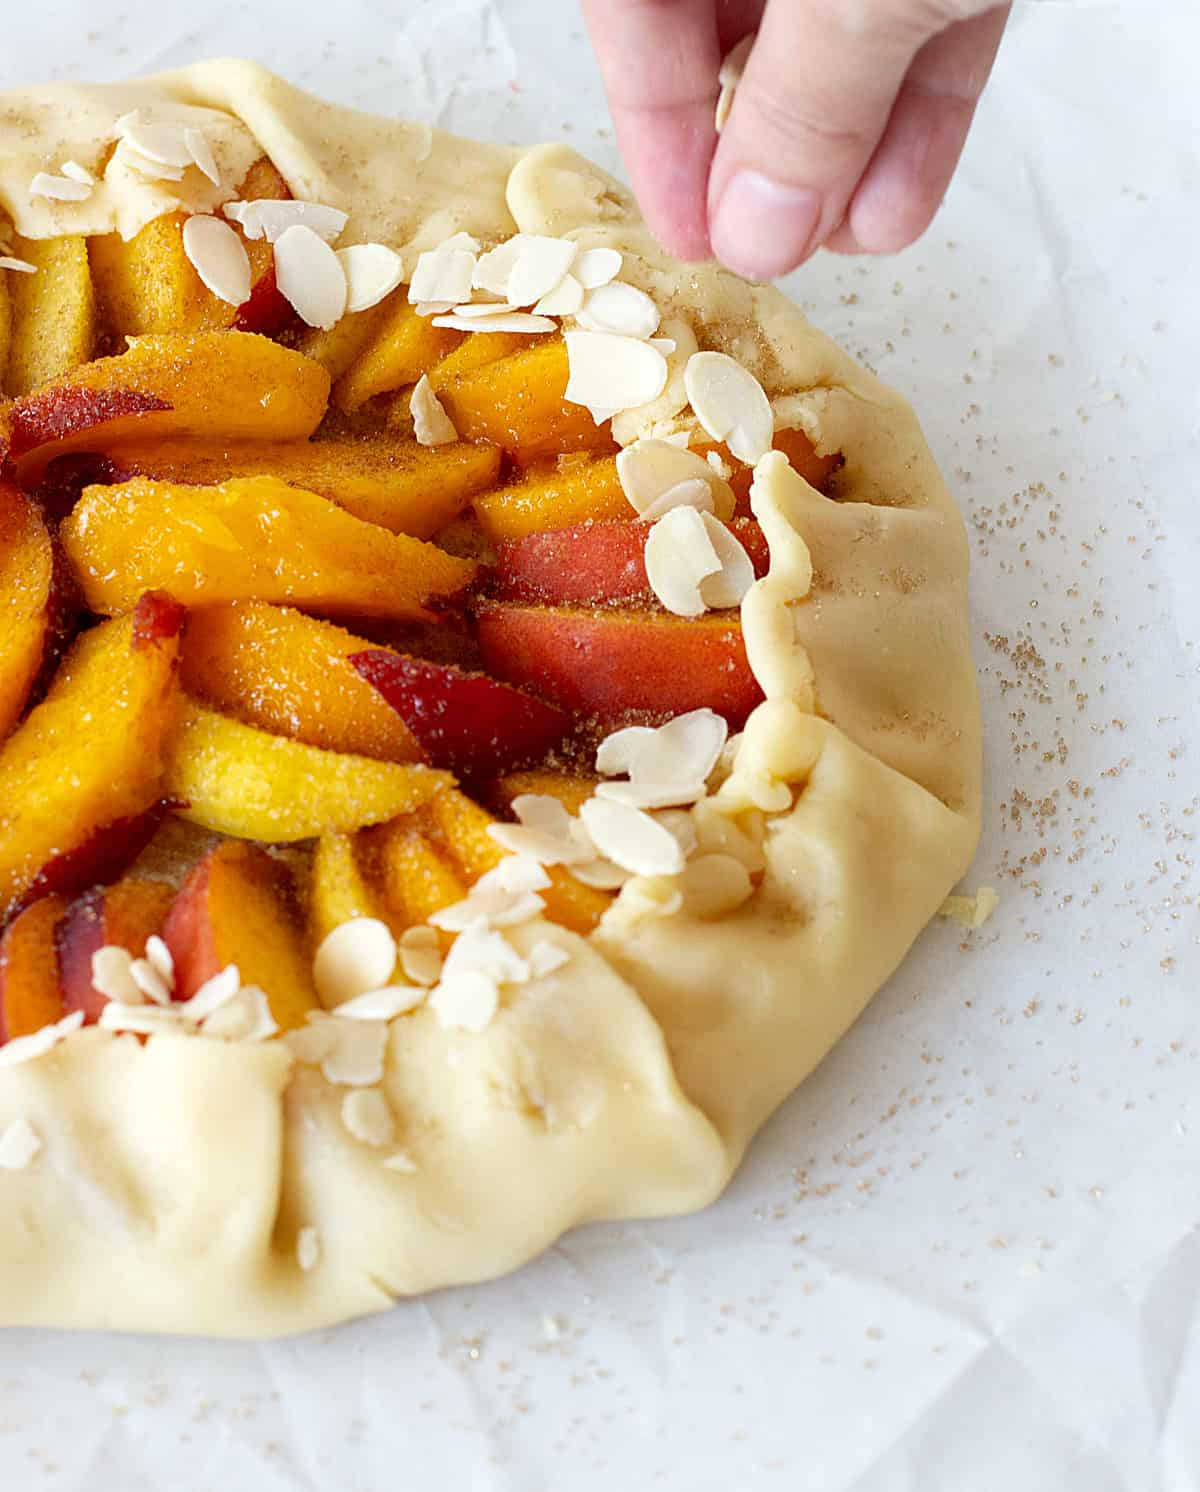 On a white surface an unbaked peach free-form tart, hand adding sliced amonds